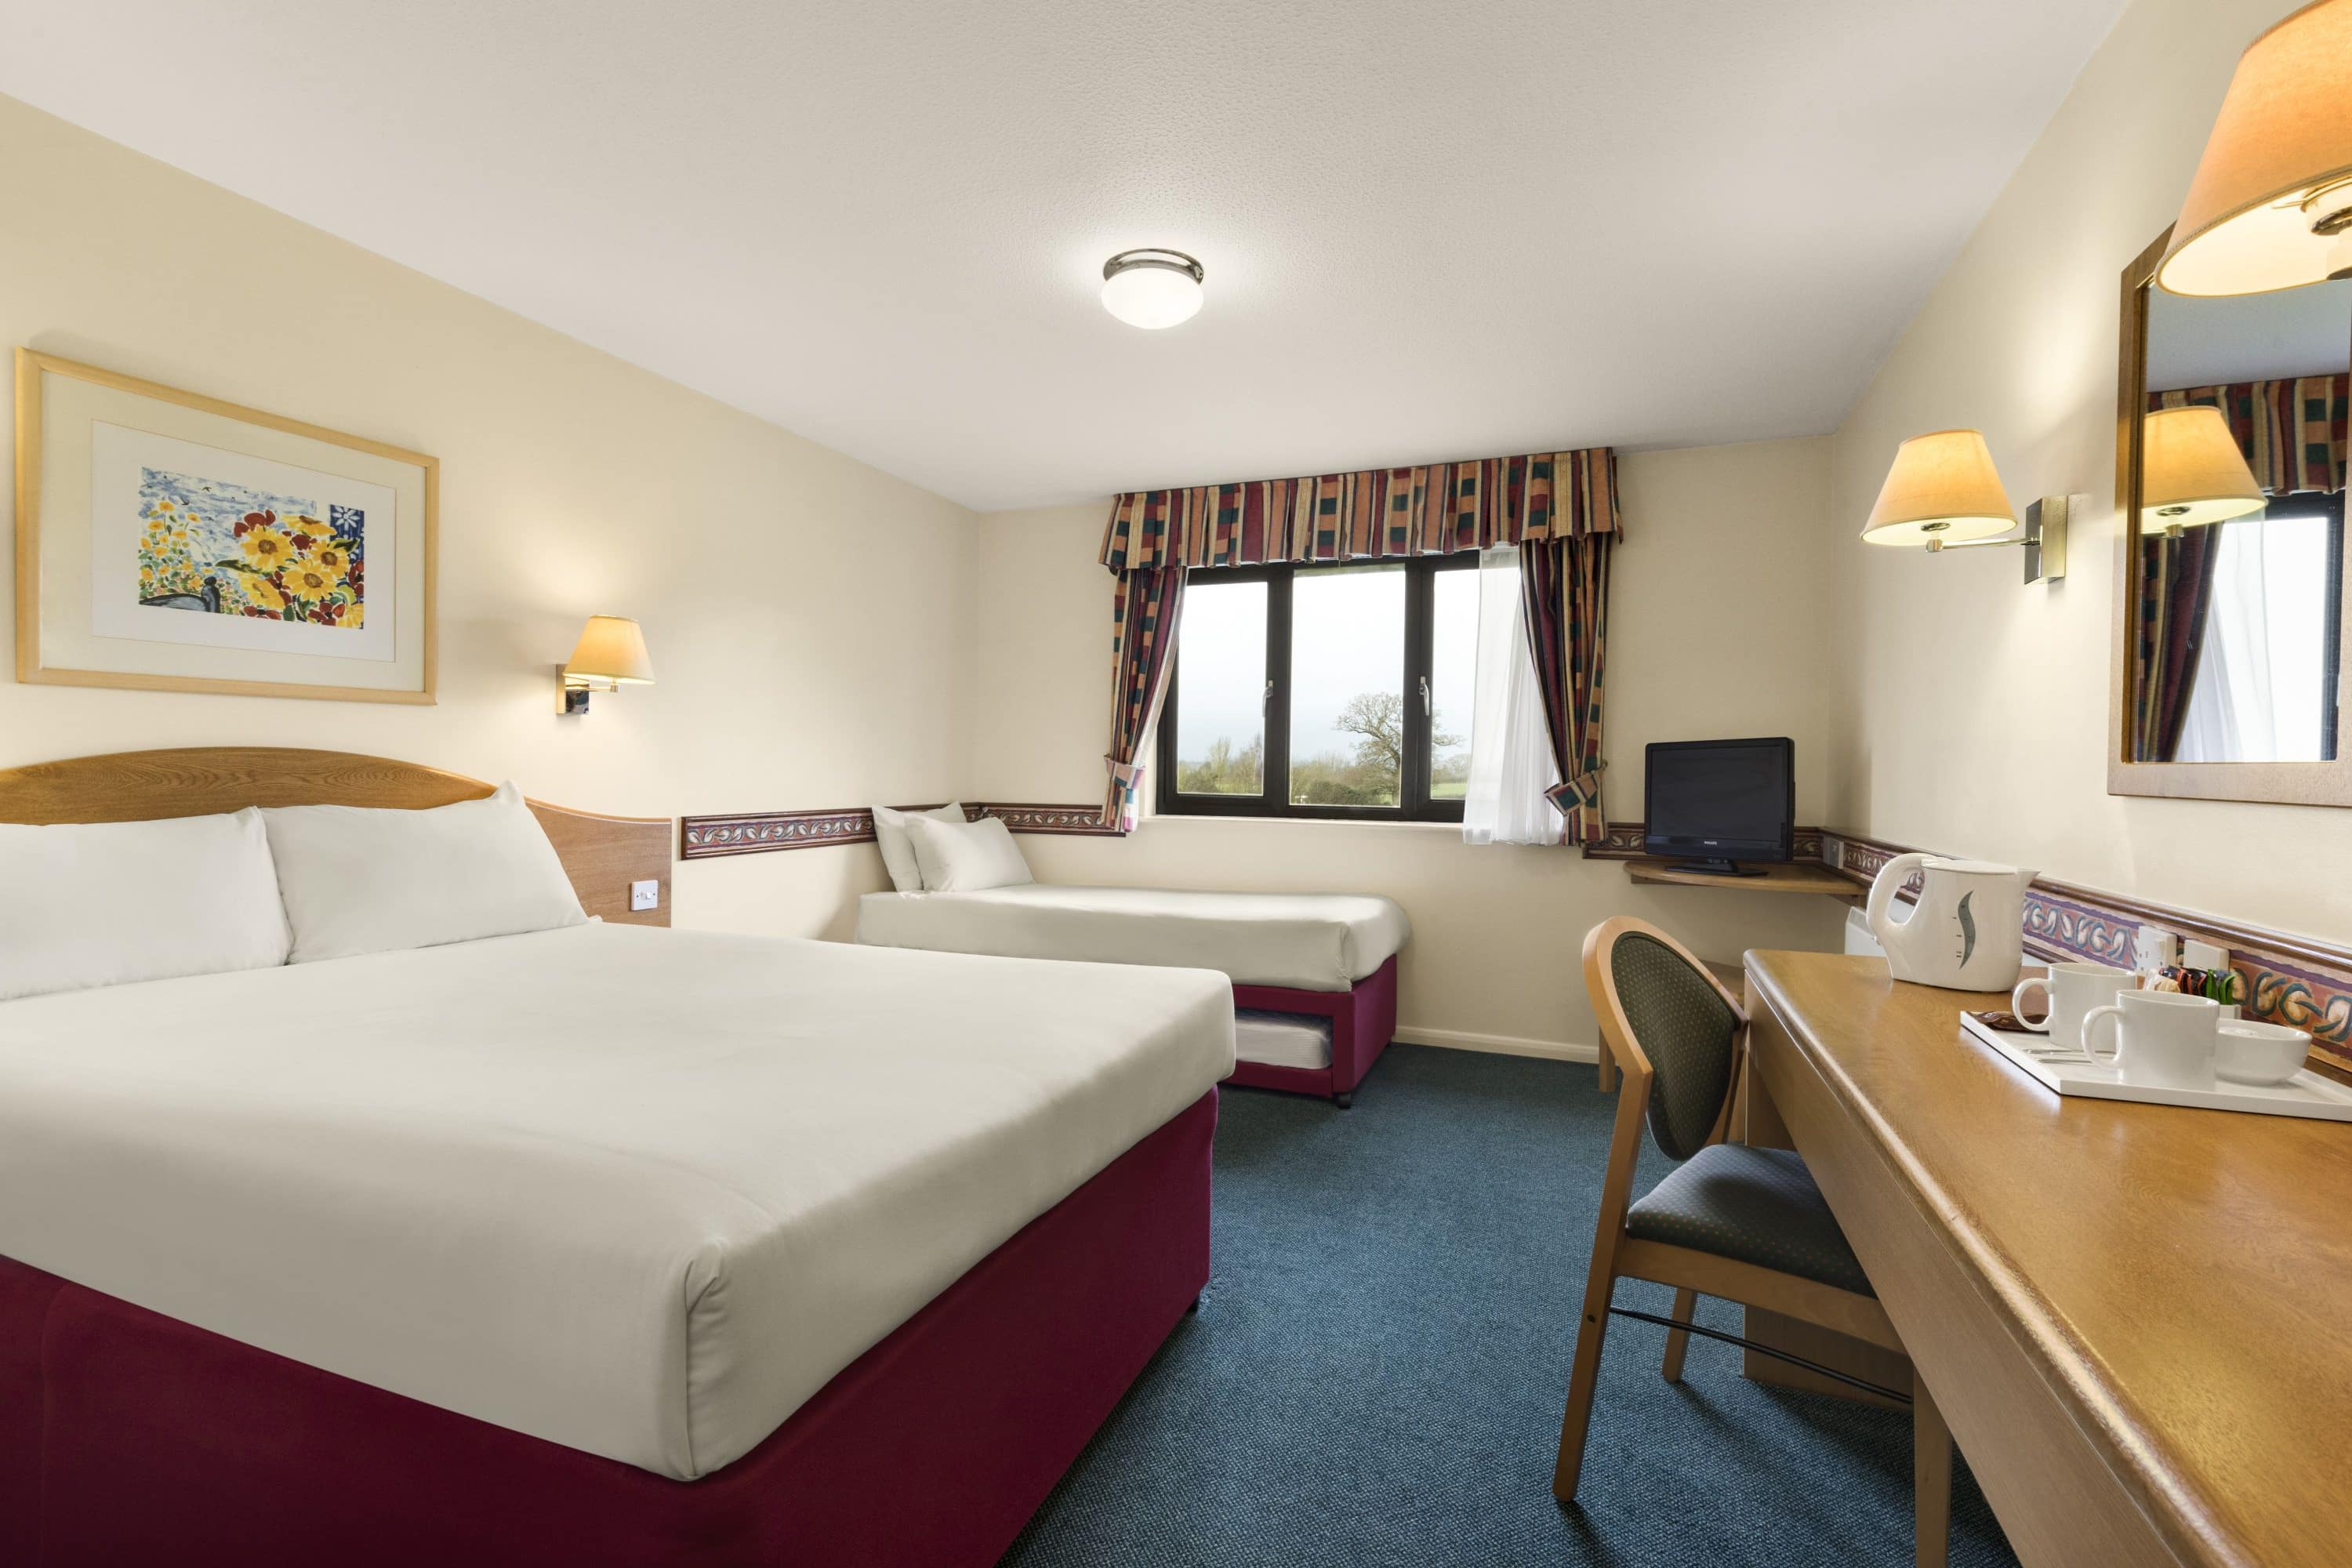 Guest room at the Days Inn Michaelwood M5 in Gloucestershire, Other than US/Canada